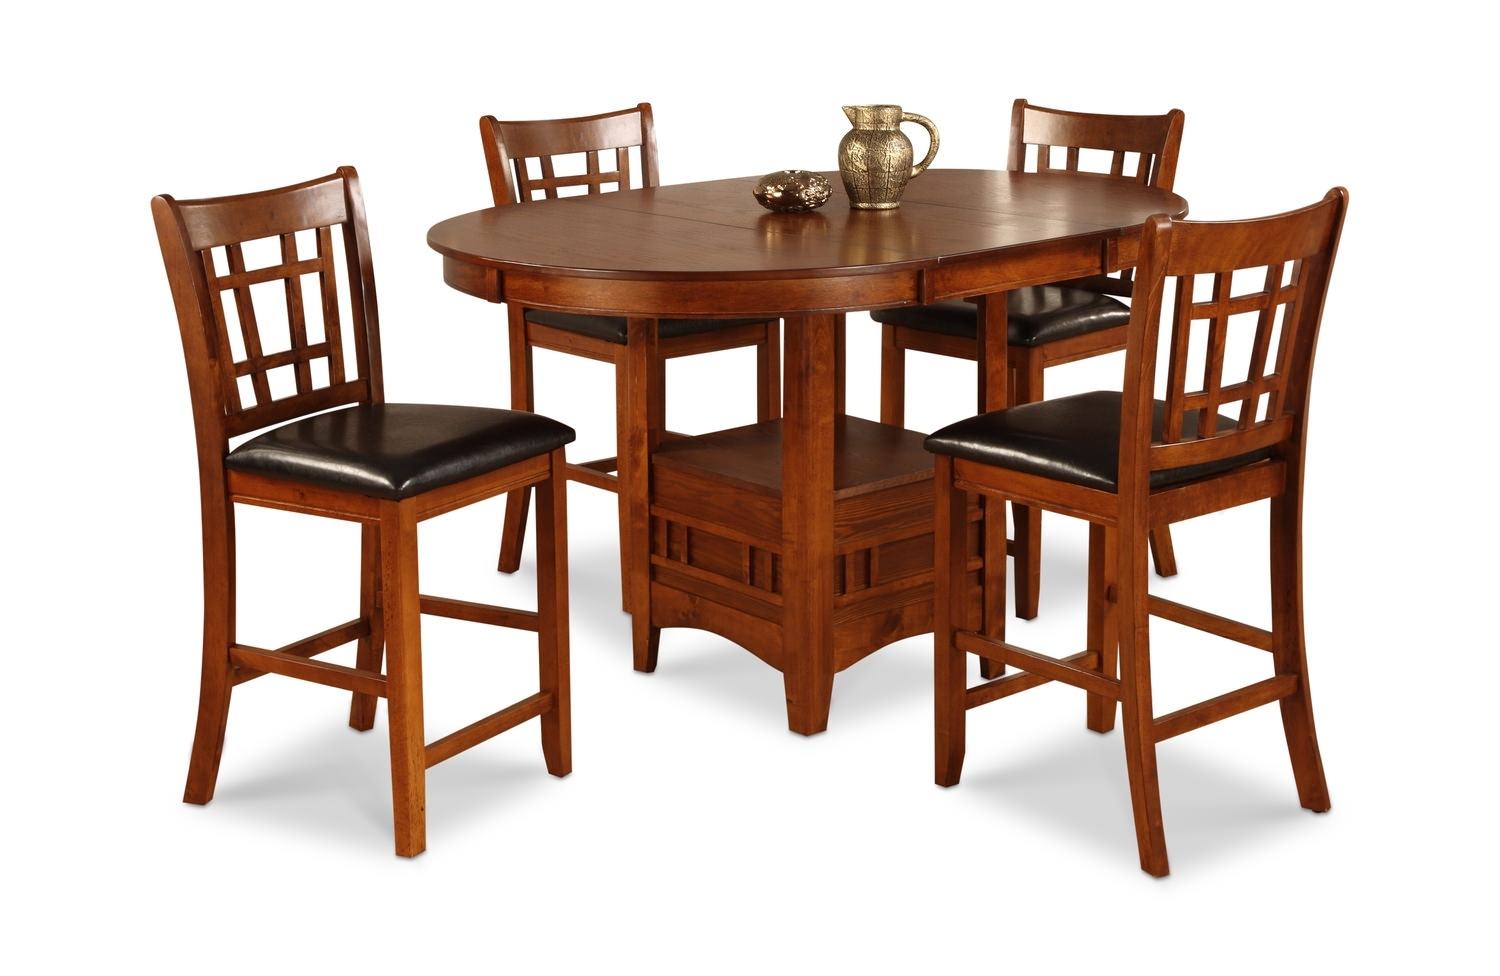 Mission Park Dining Set | Hom Furniture With Best And Newest Craftsman 5 Piece Round Dining Sets With Uph Side Chairs (Image 14 of 20)